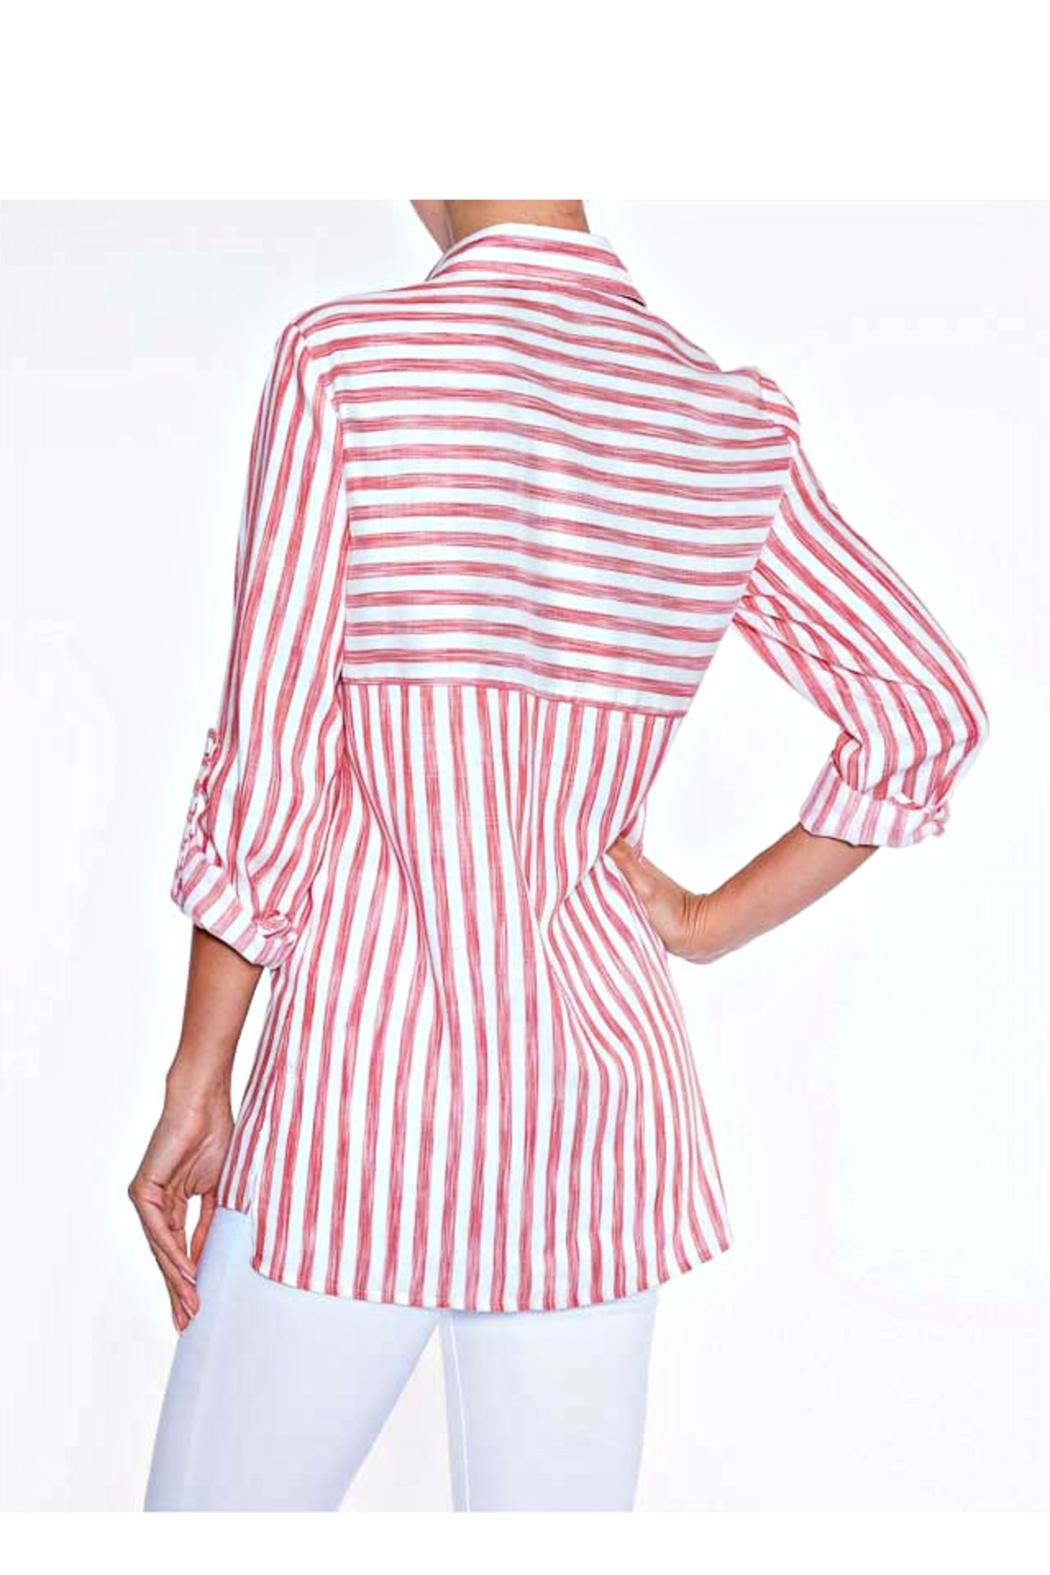 Lily Moss Red Striped Blouse - Front Full Image